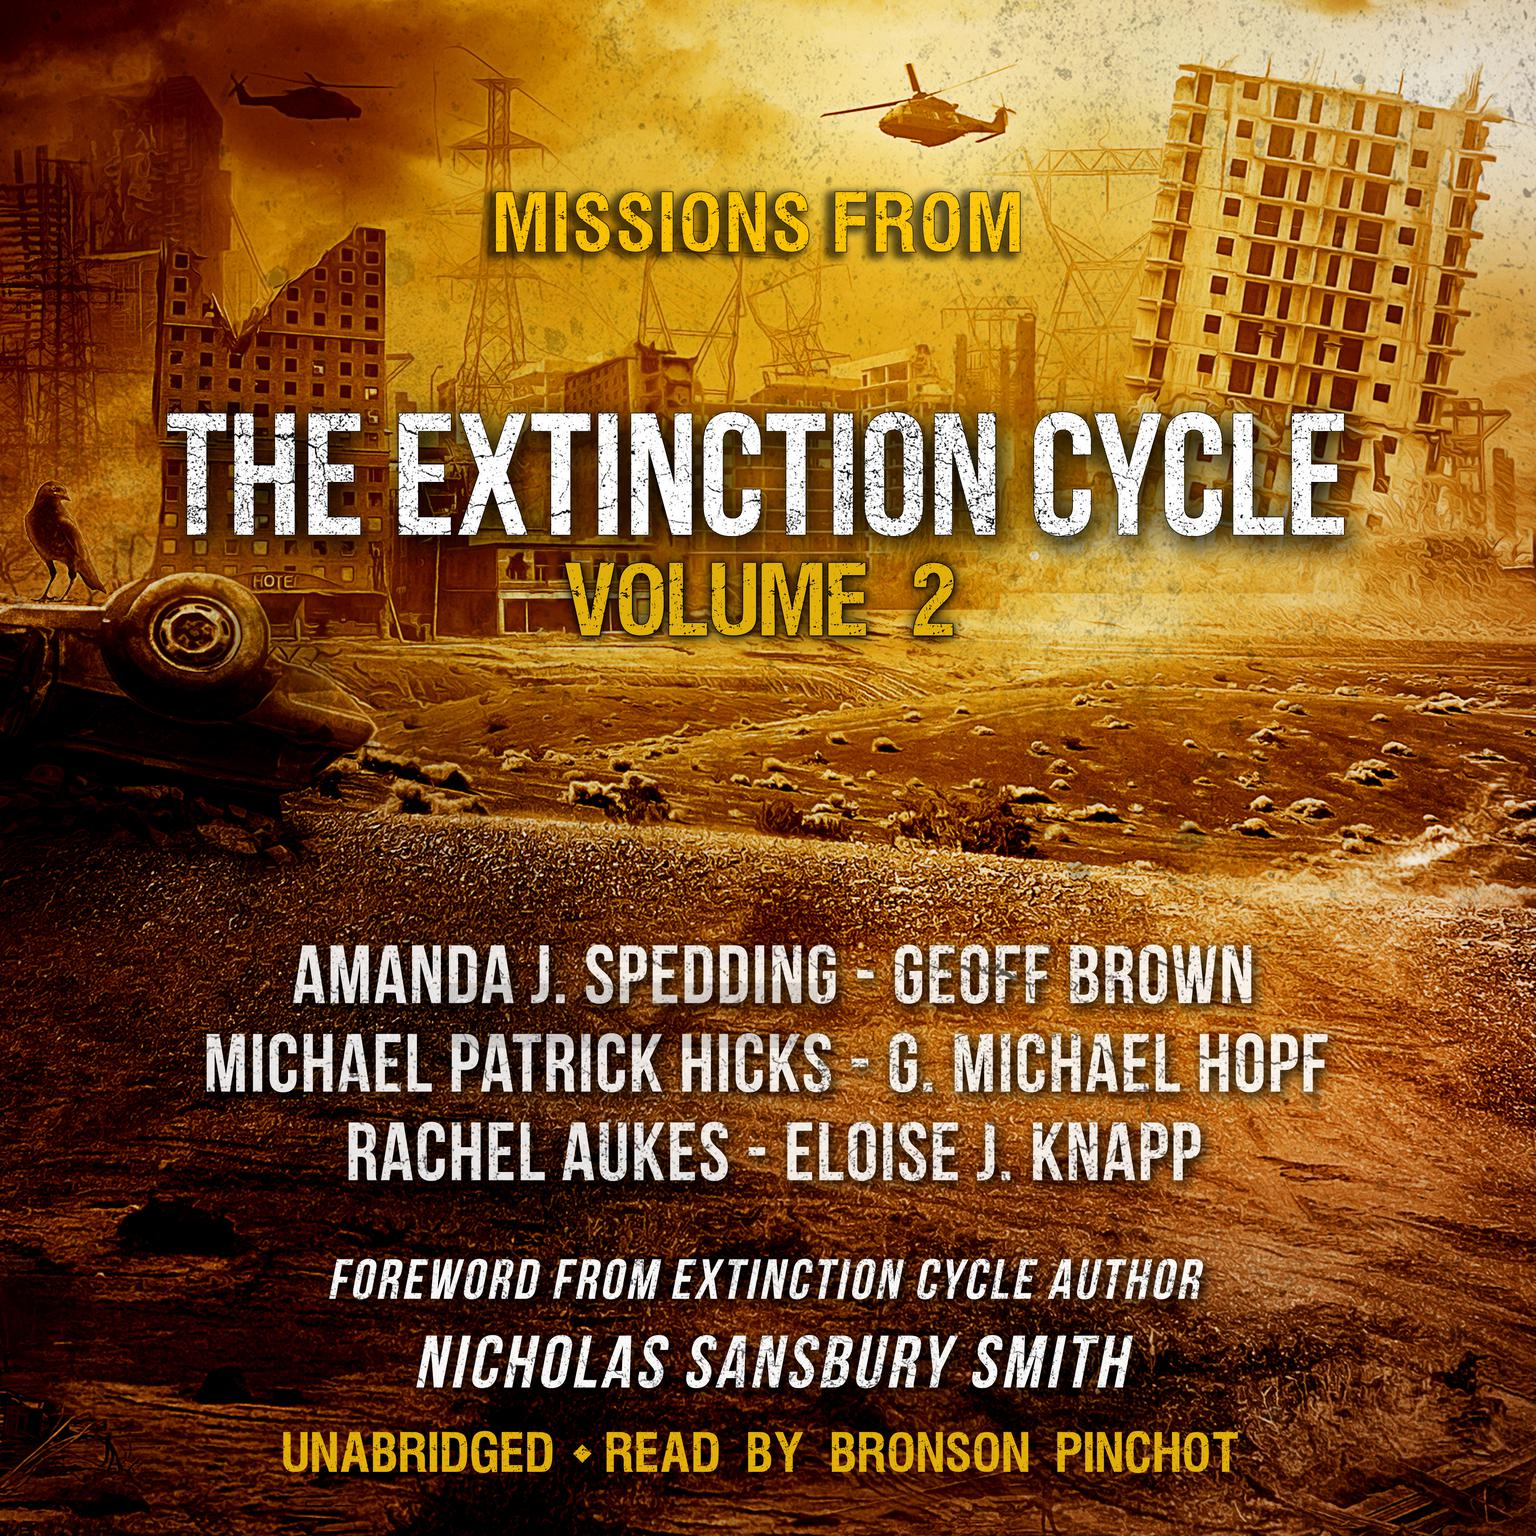 Printable Missions from the Extinction Cycle, Vol. 2 Audiobook Cover Art